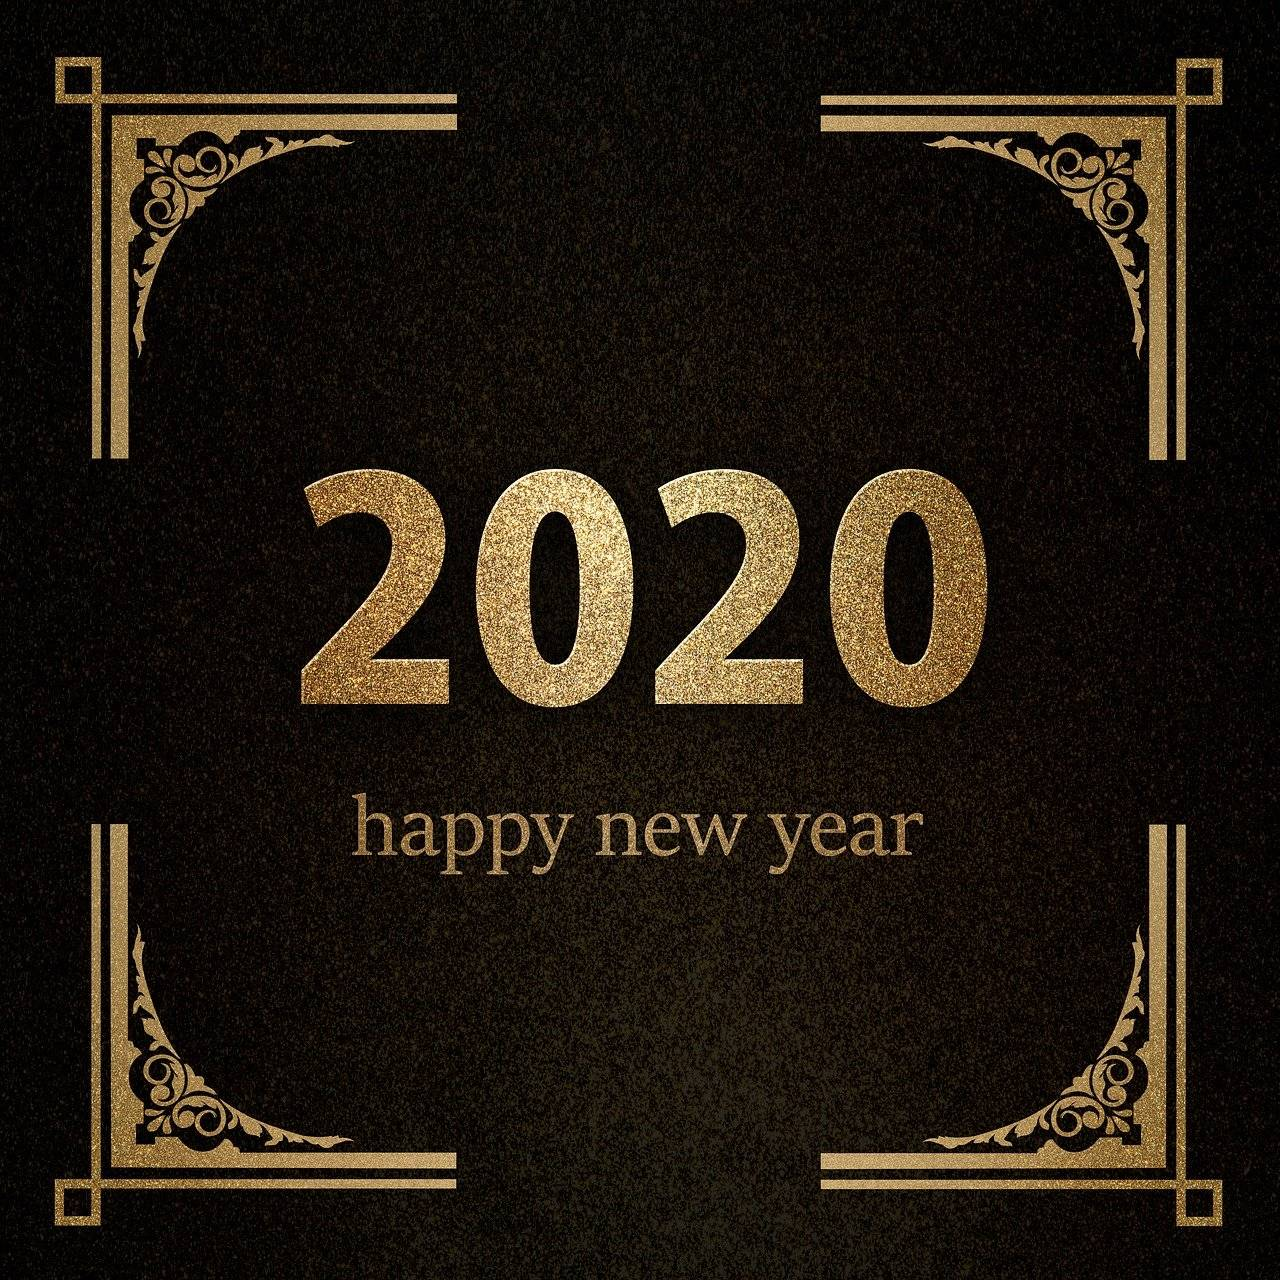 Happy New Year 2020: Greetings, Wishes and Messages